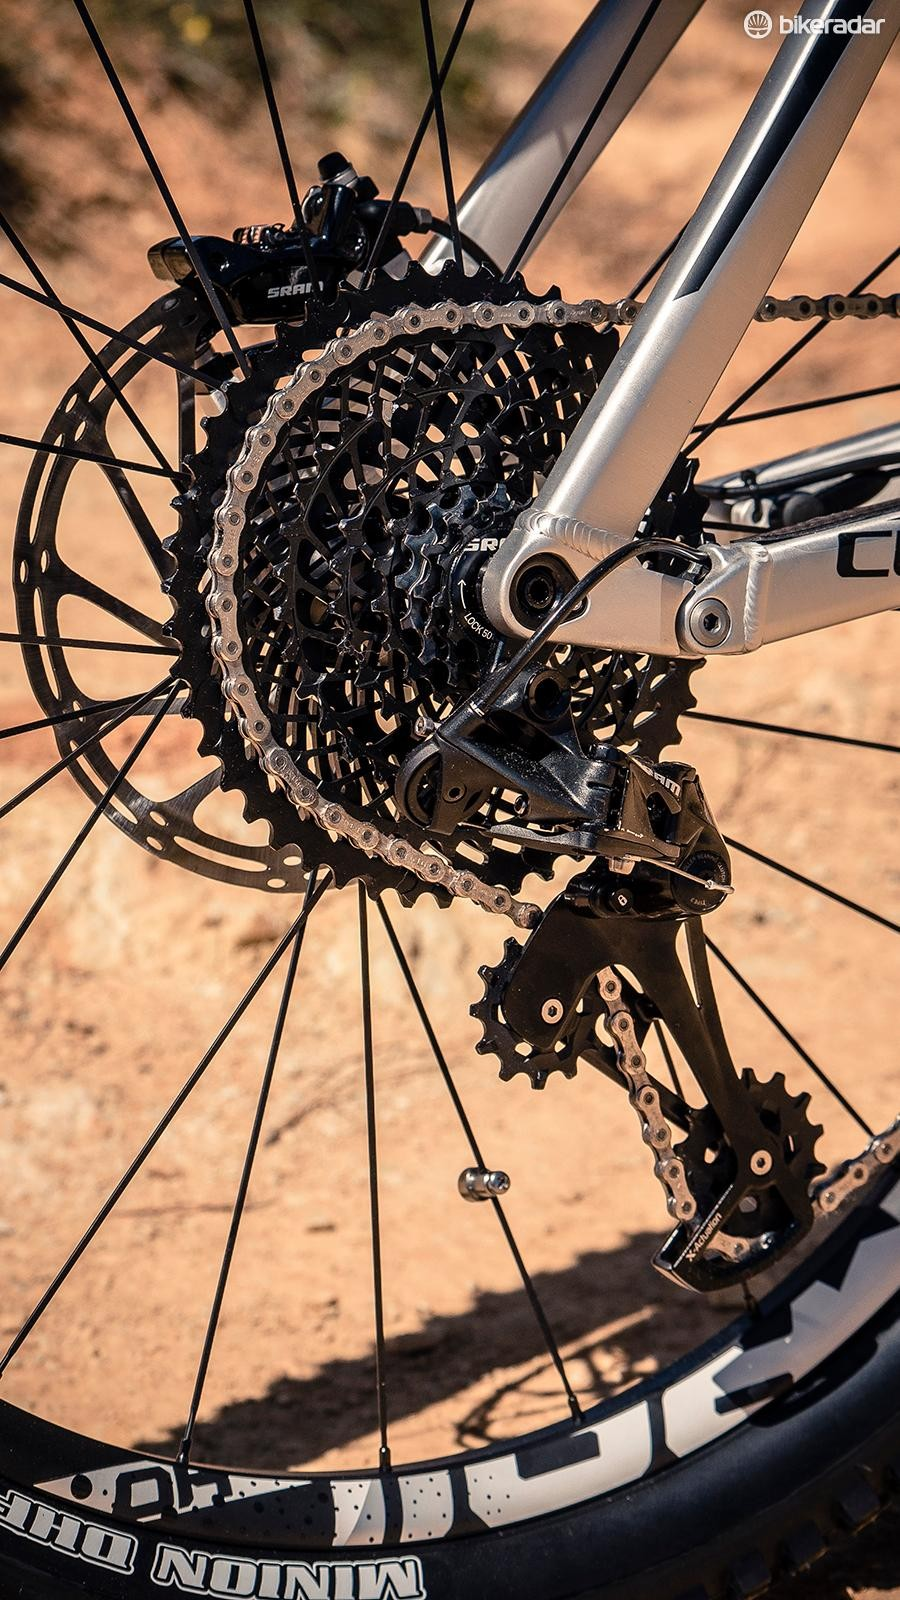 The eight-speed 11-48t cassette uses big gear steps (30% on average) to compensate for the acceleration delivered by the e-bike motor